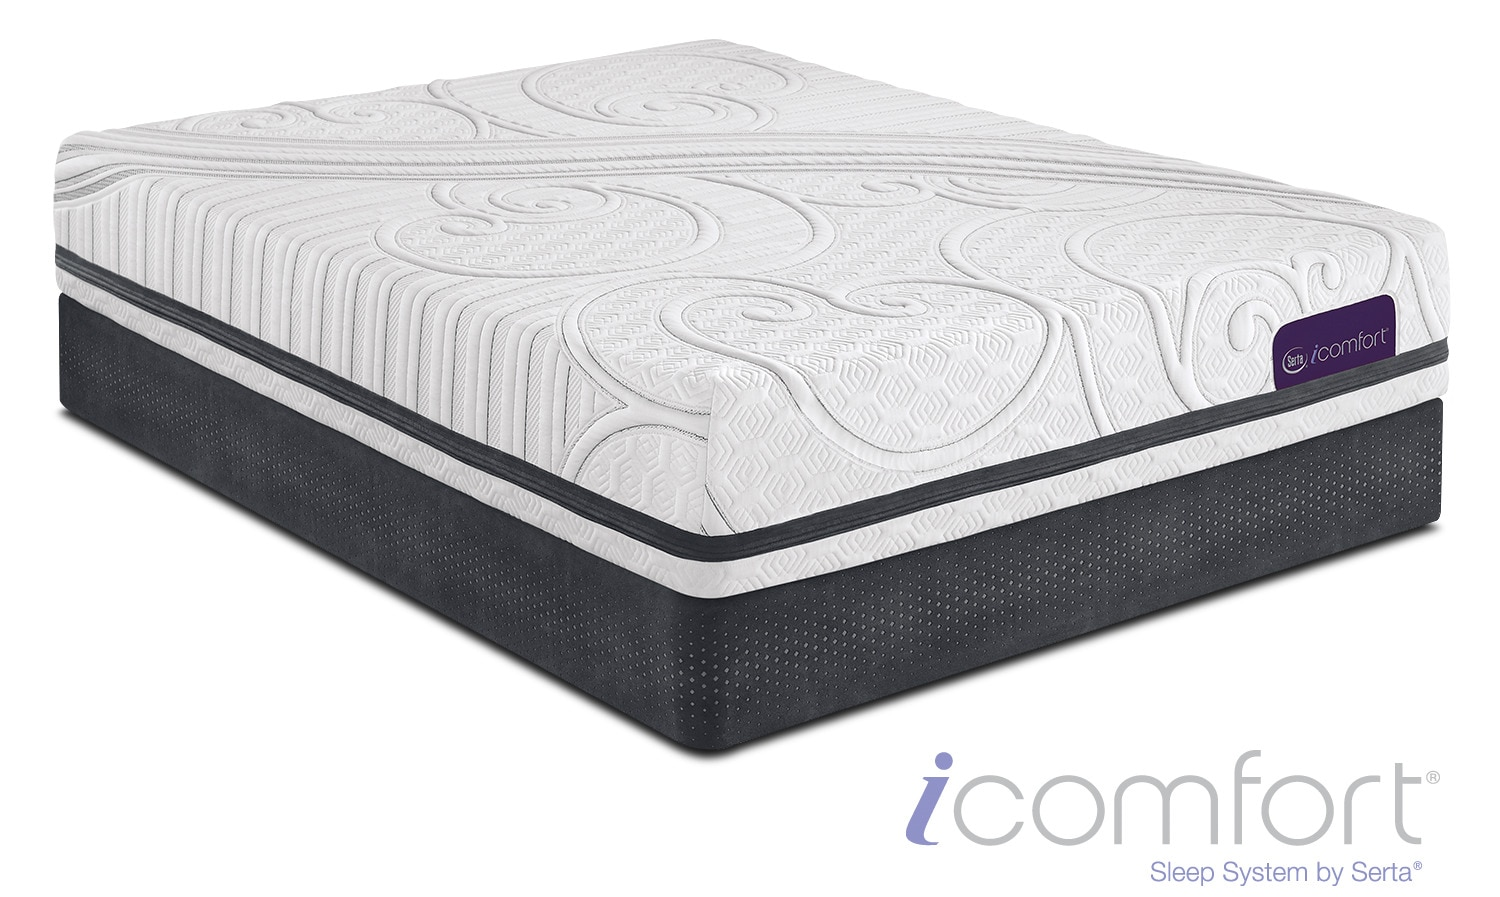 Mattresses and Bedding - Savant III Firm Queen Mattress and Split Foundation Set